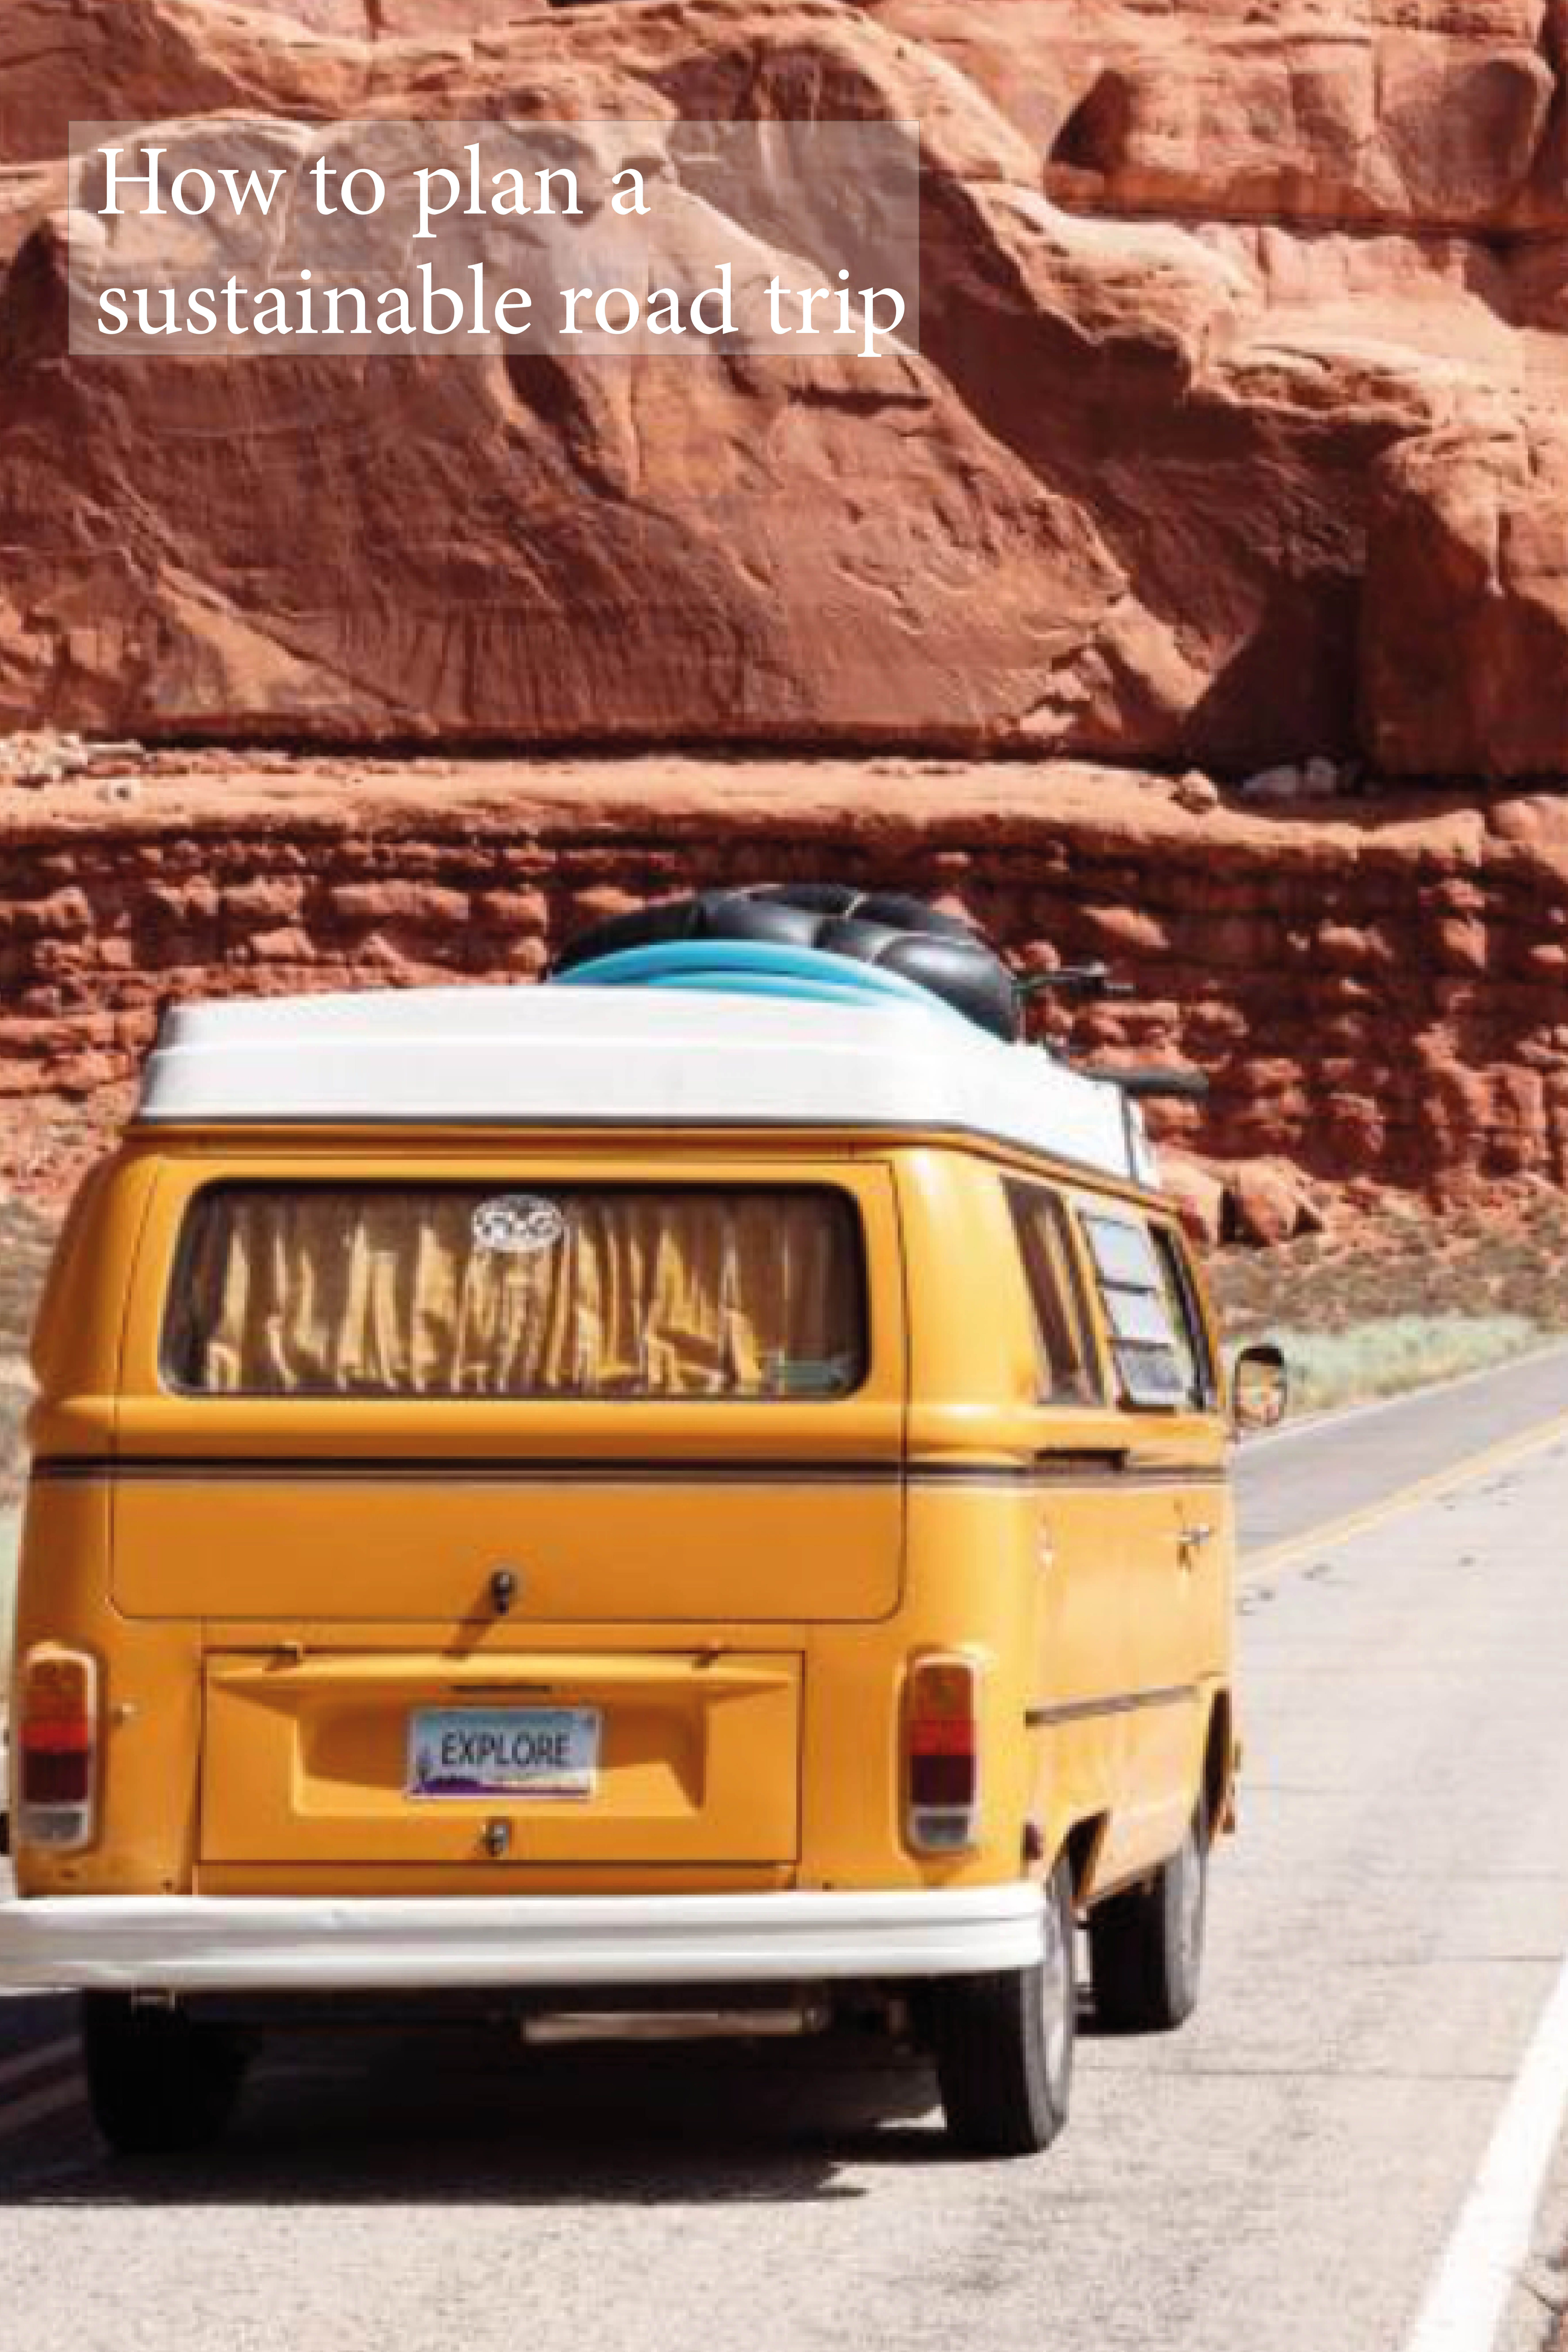 How To Have A Sustainable Road Trip